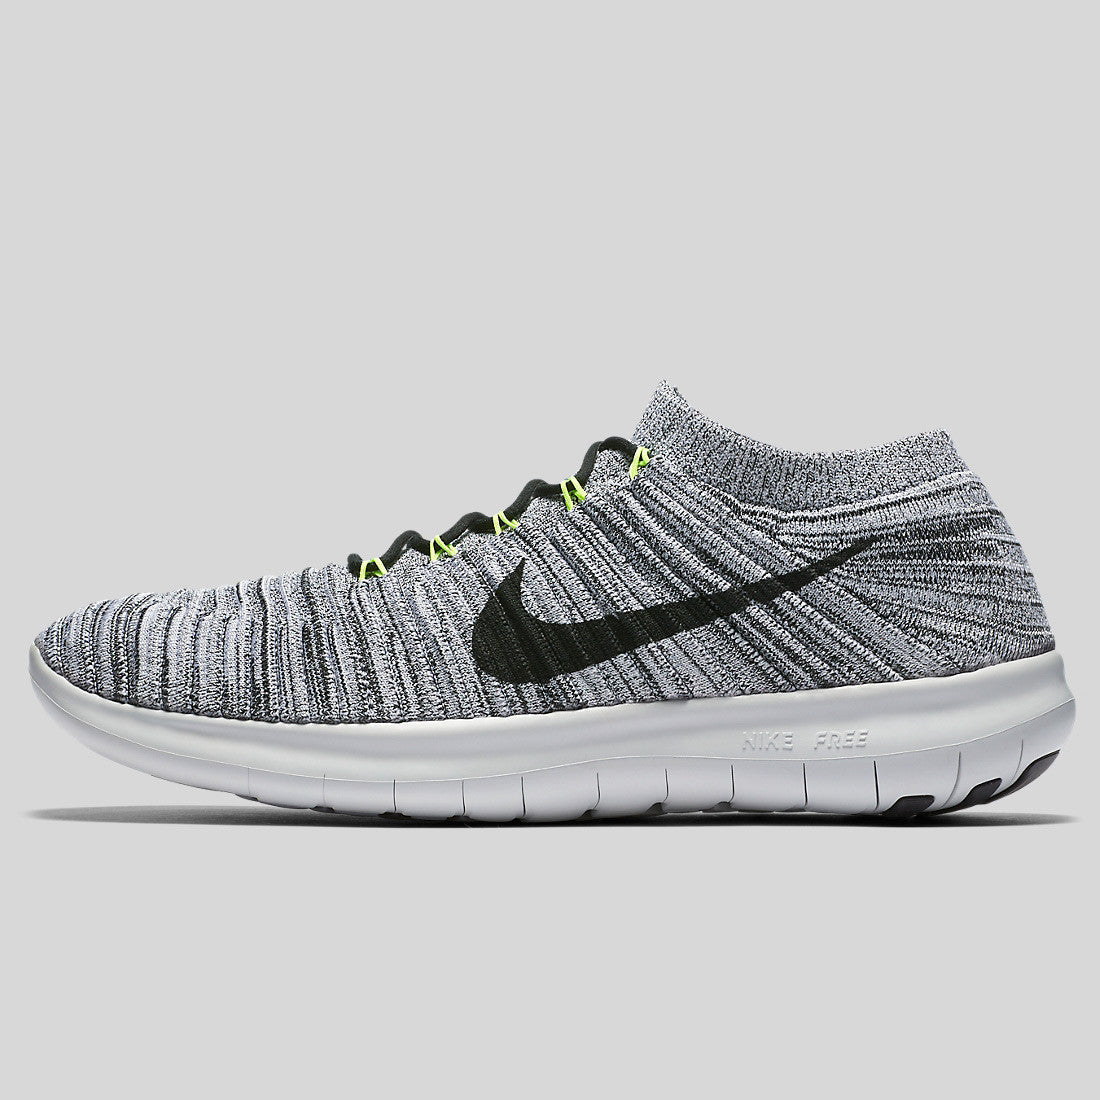 Nike Free RN Motion Flyknit White Black Volt Off White (834584-100 ... c36b56b02